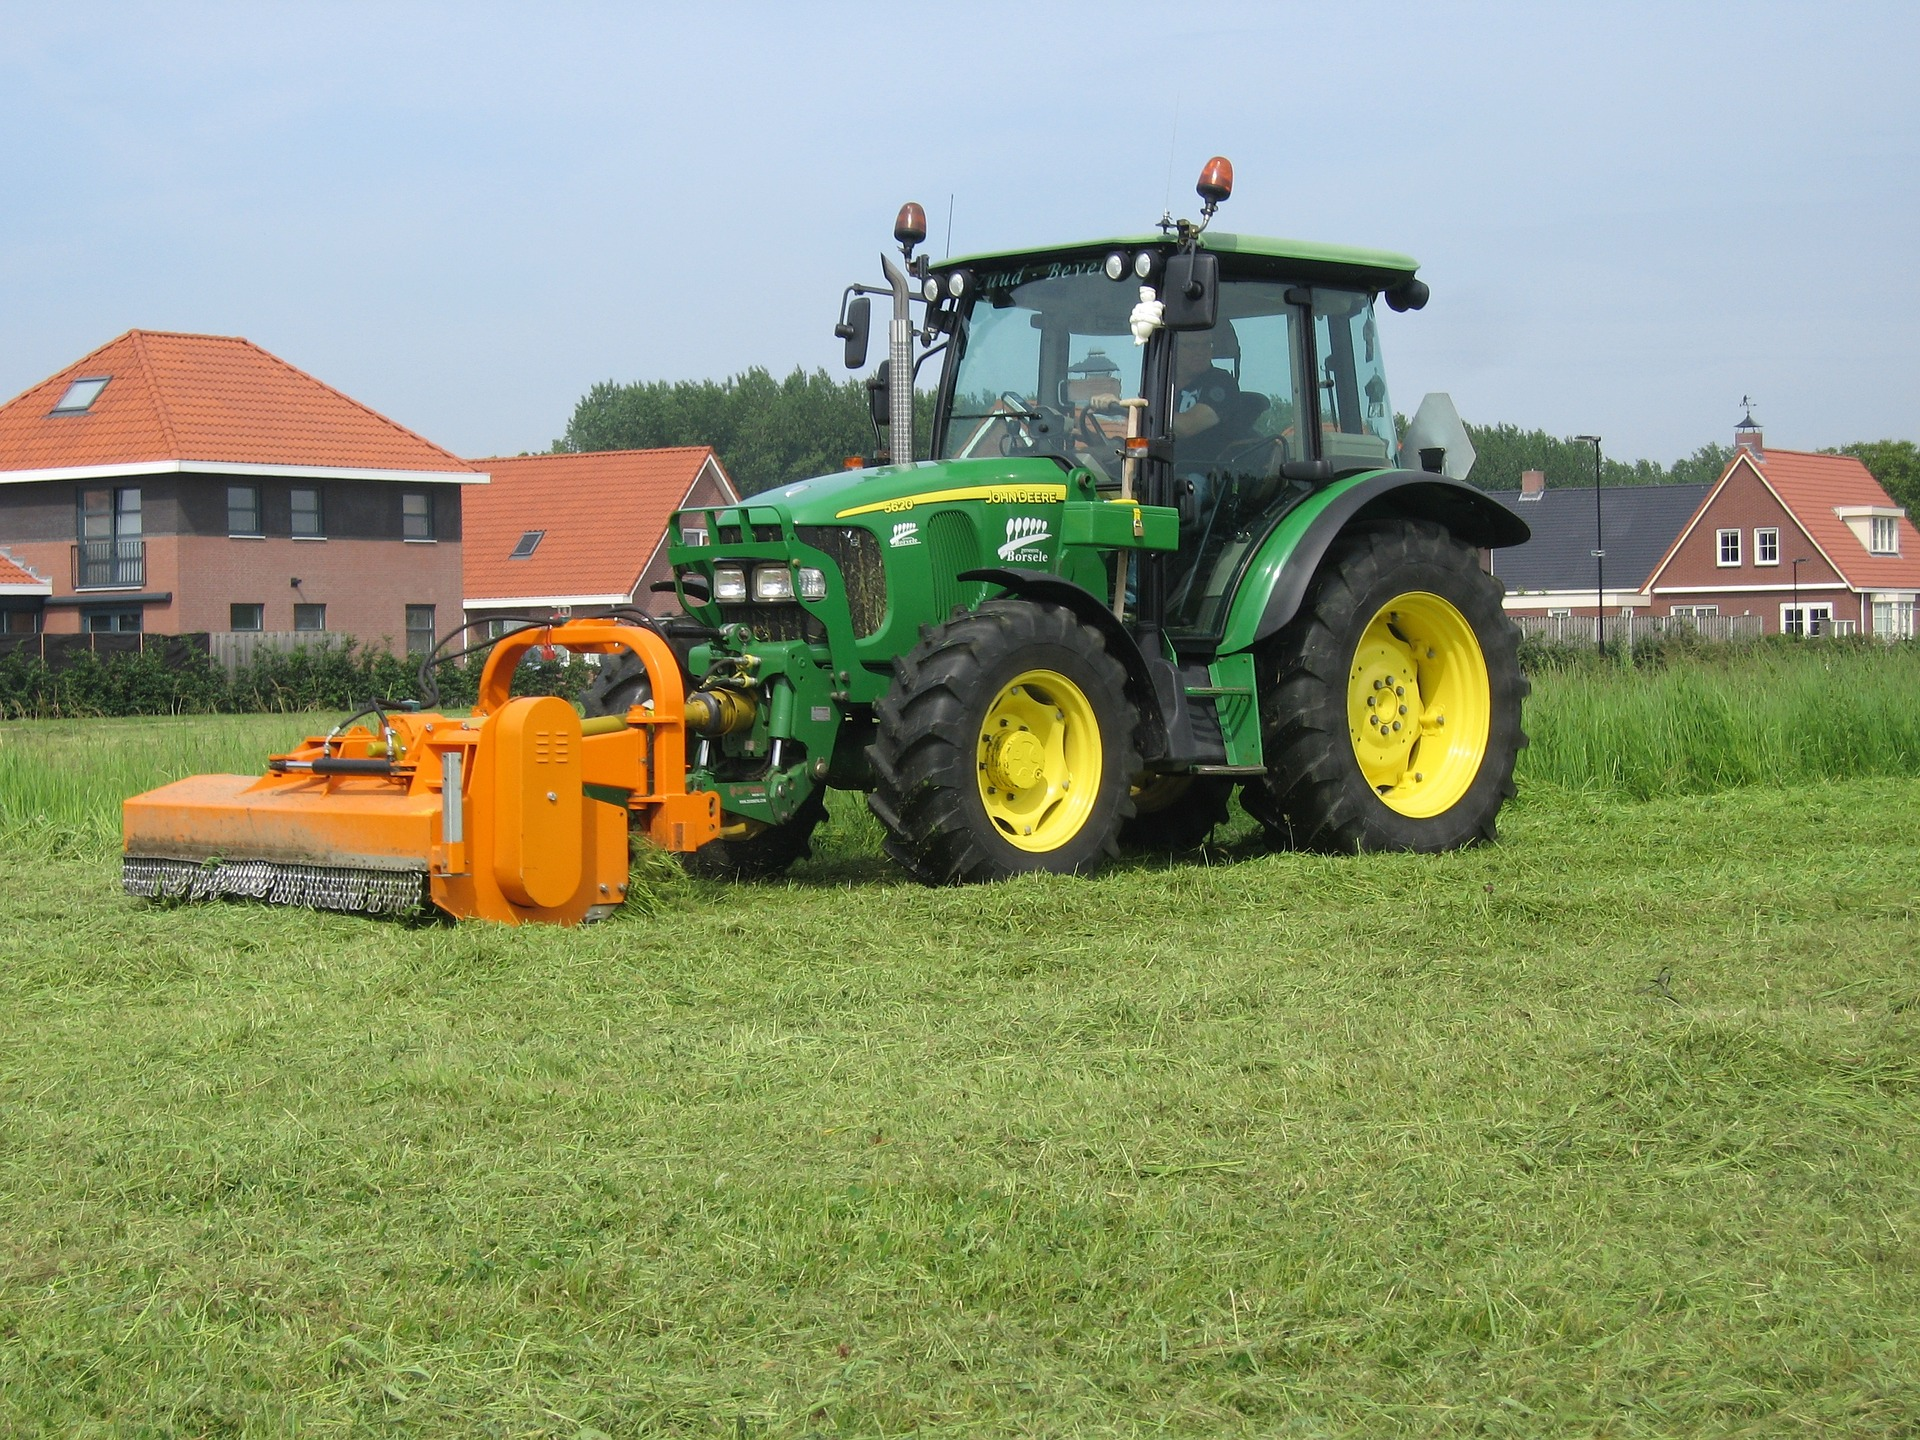 tractor-826838_1920